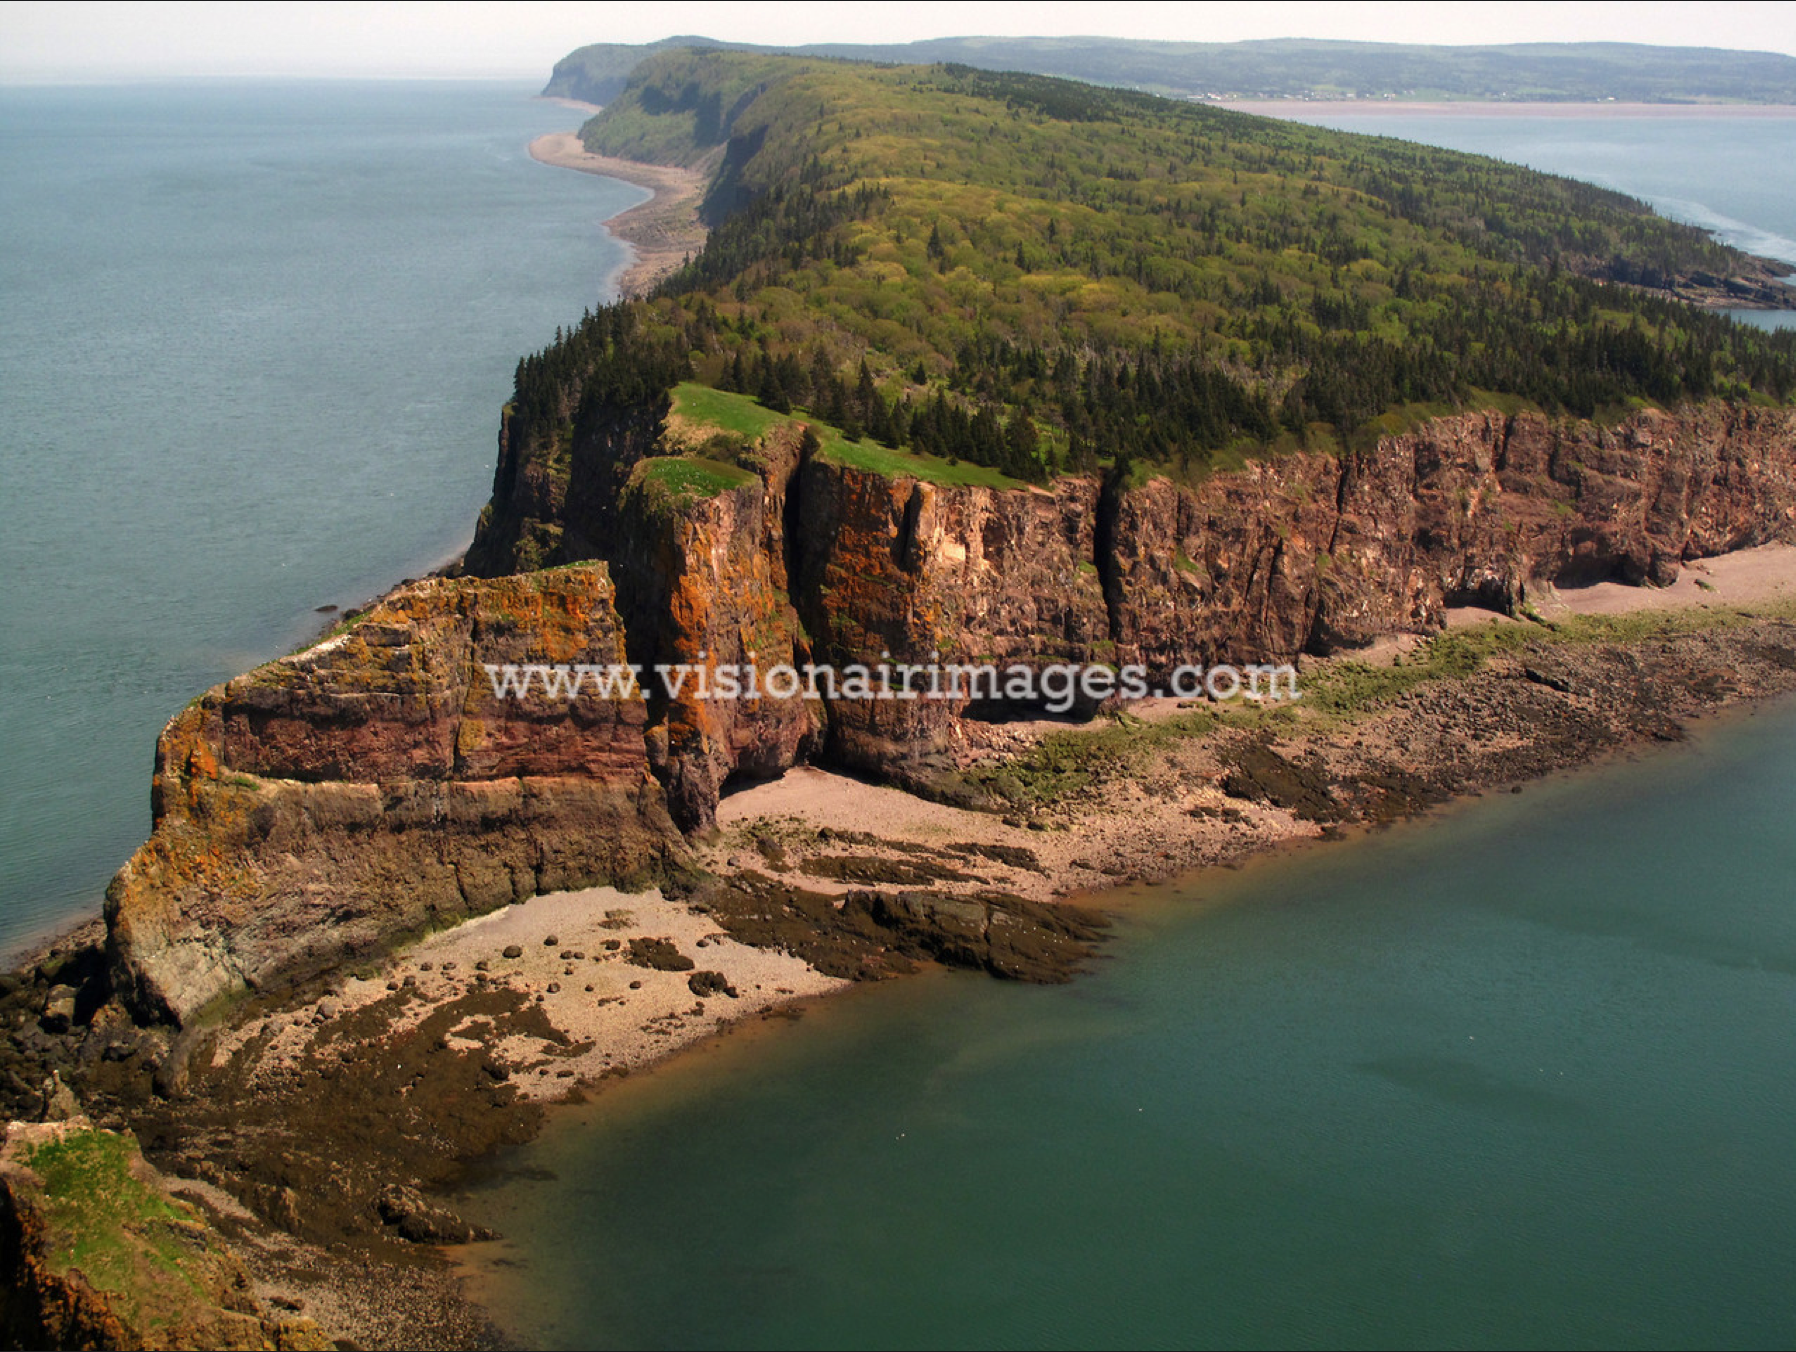 NOT MY IMAGE, just showing how high and beautiful Cape Split from air or boat.